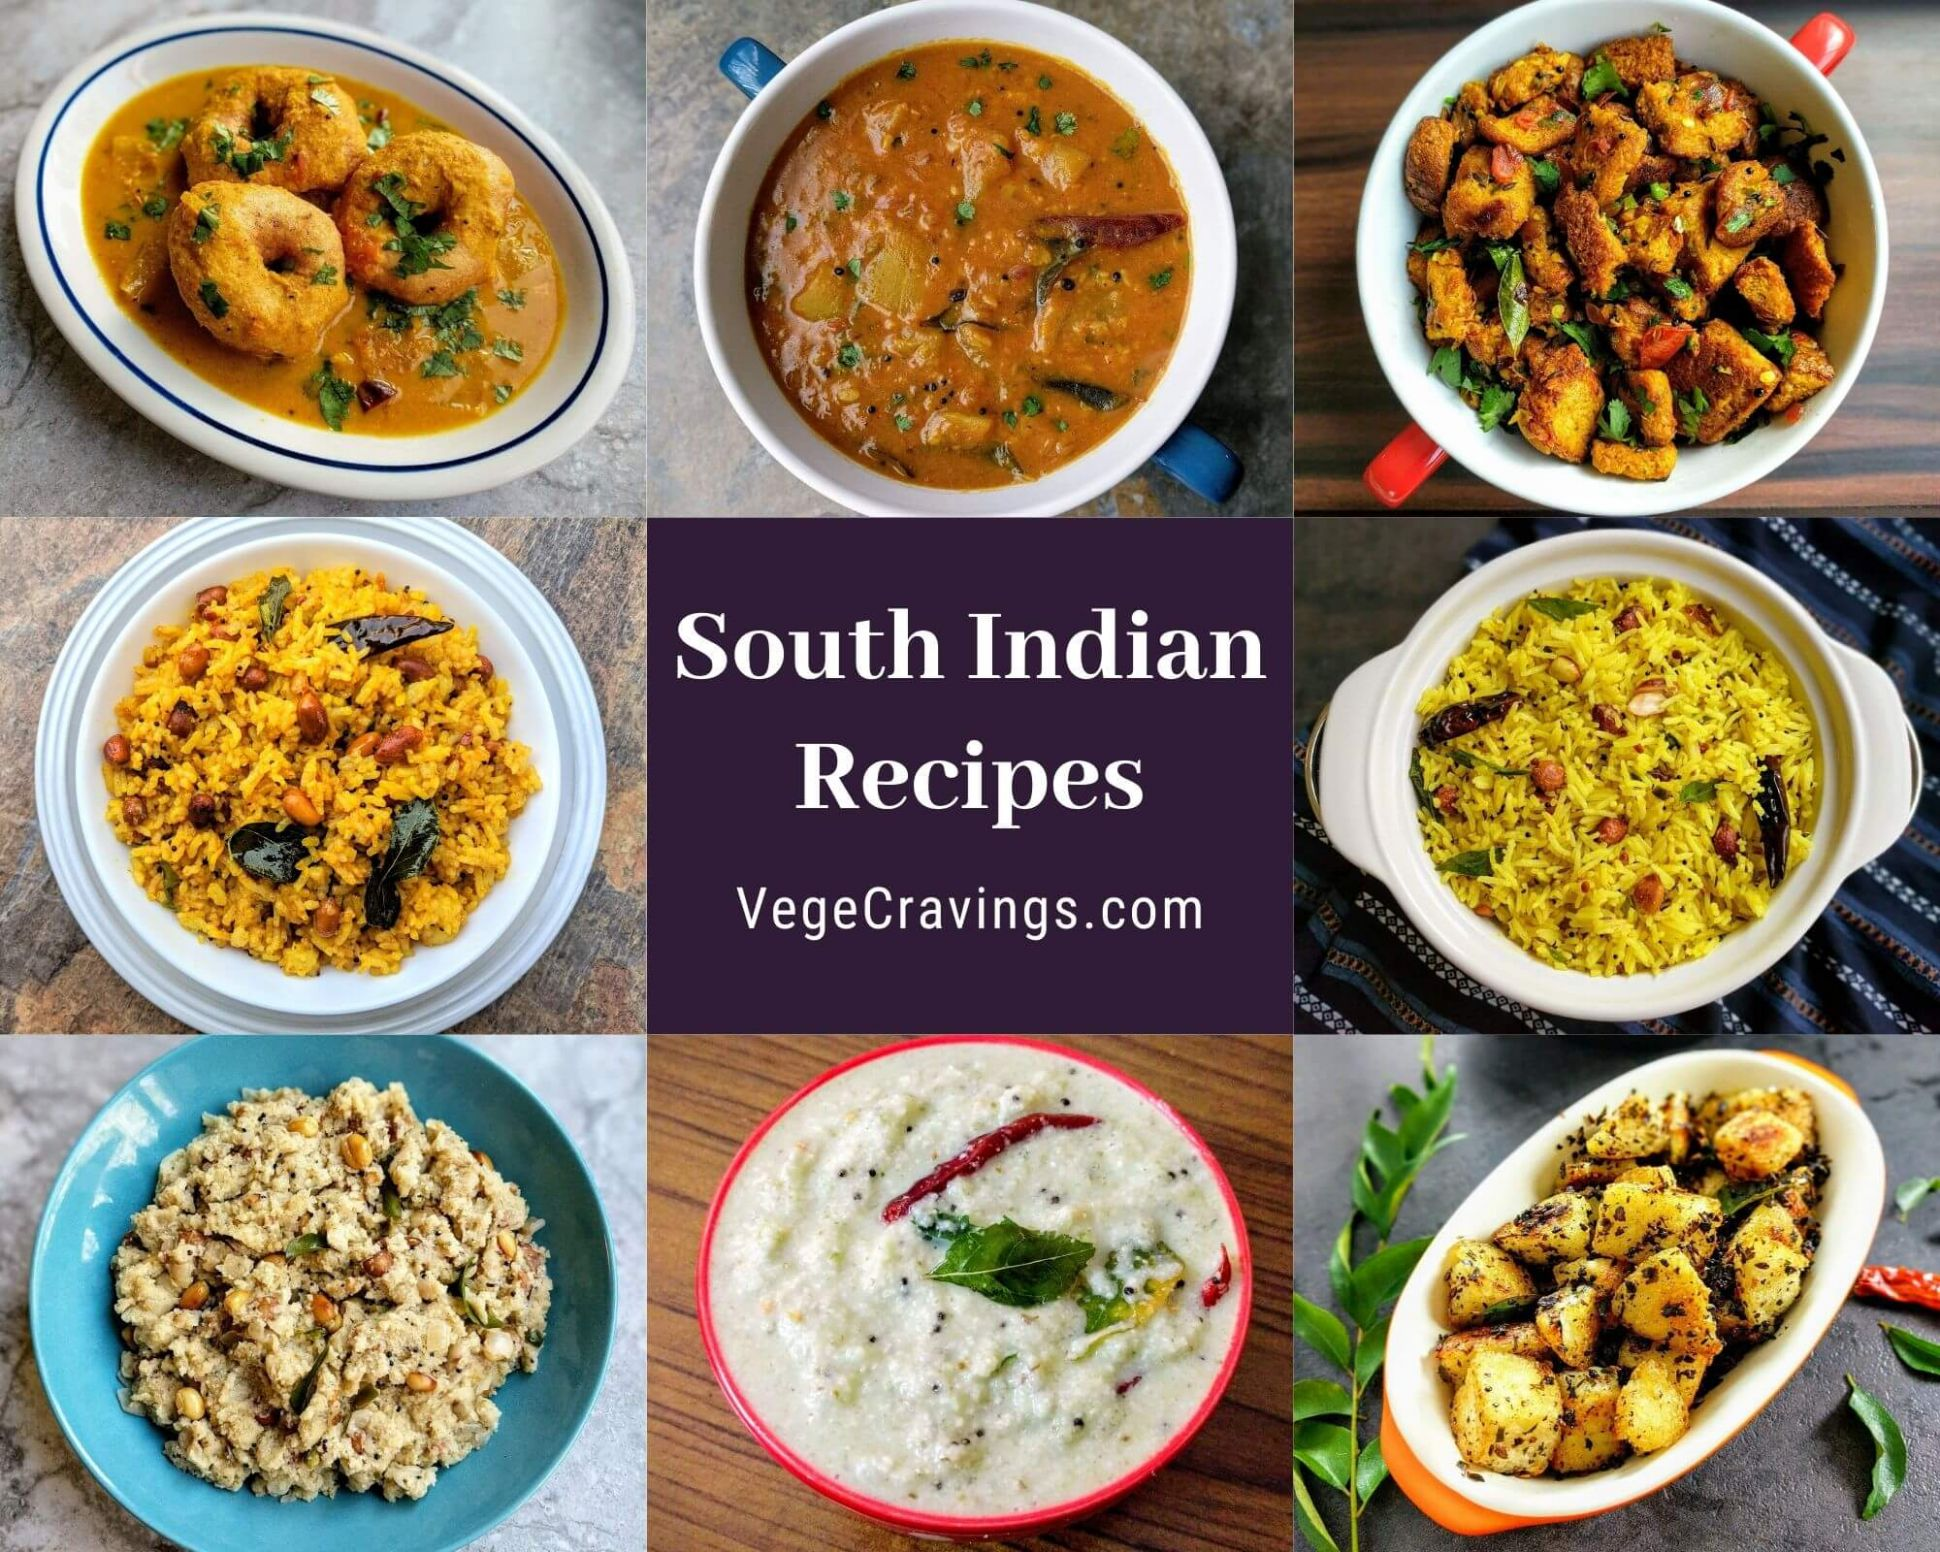 South Indian Recipes | 11 Delicious South Indian Dishes | VegeCravings